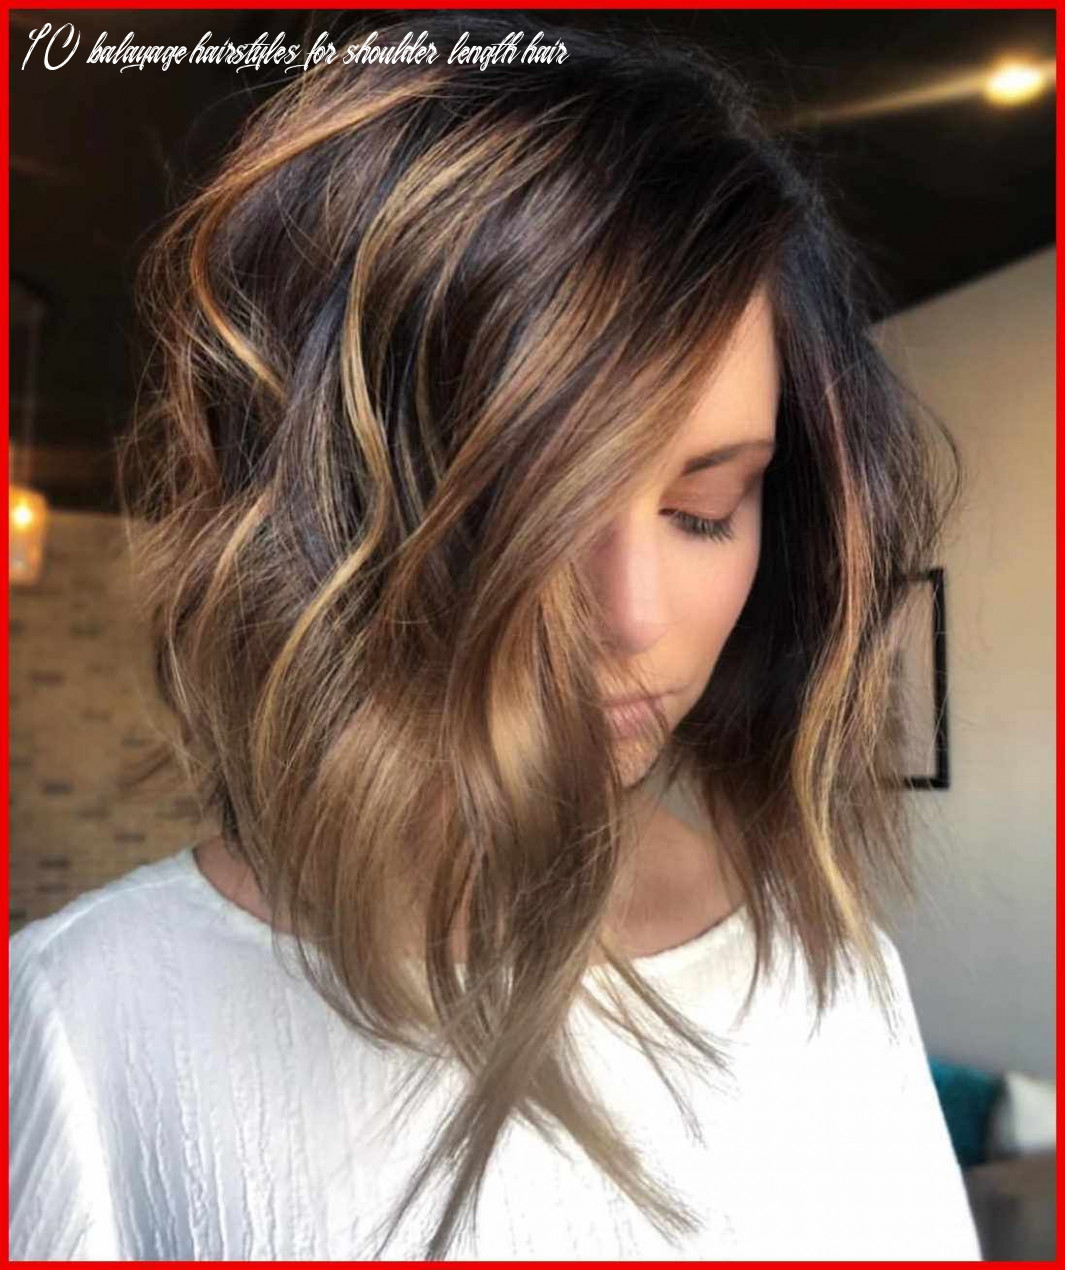 9 trendy ombre and balayage hairstyles for shoulder length hair